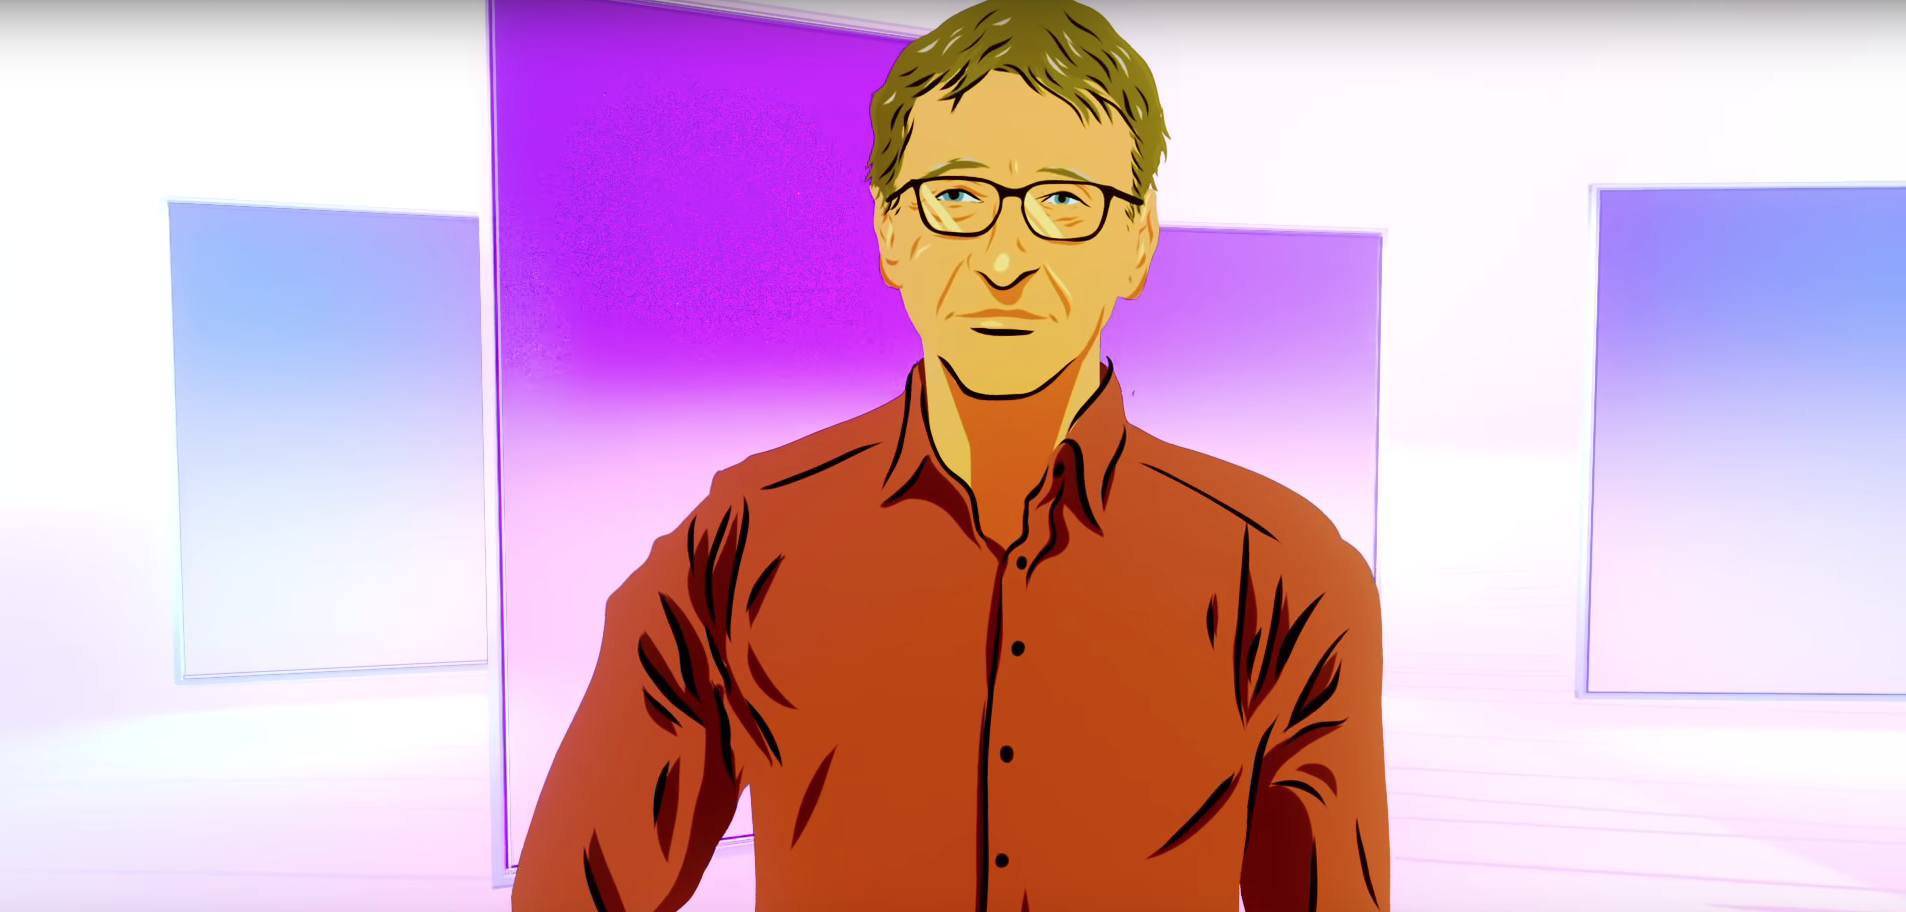 Bill Gates Recommends 5 Books With This Breathtaking Animation